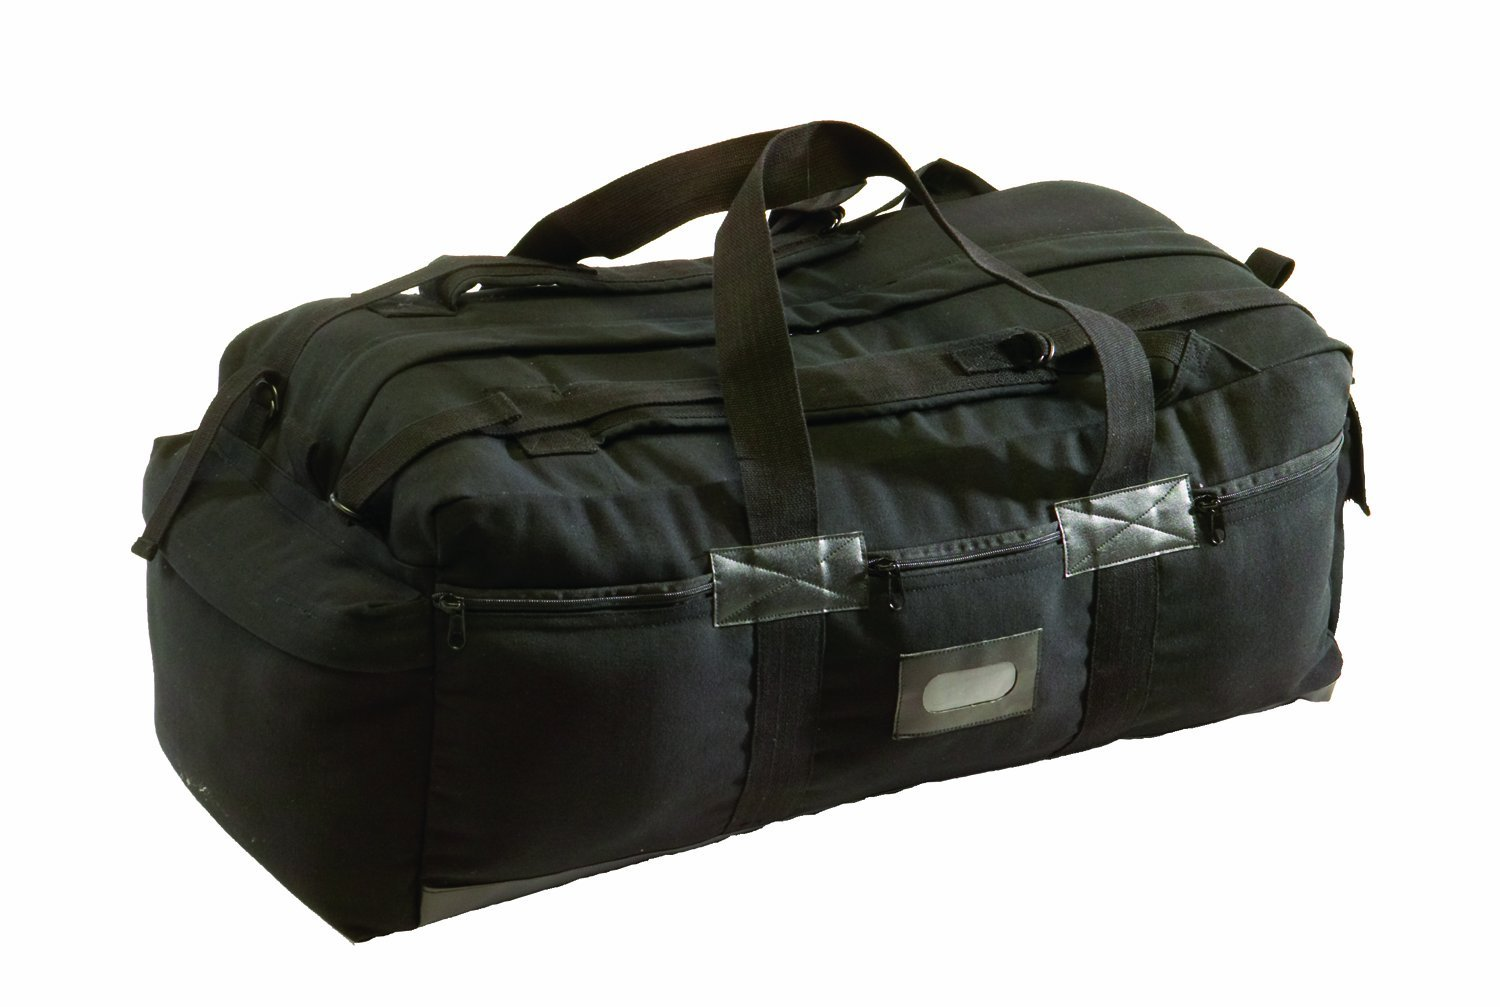 Texsport Tactical Travel Bag